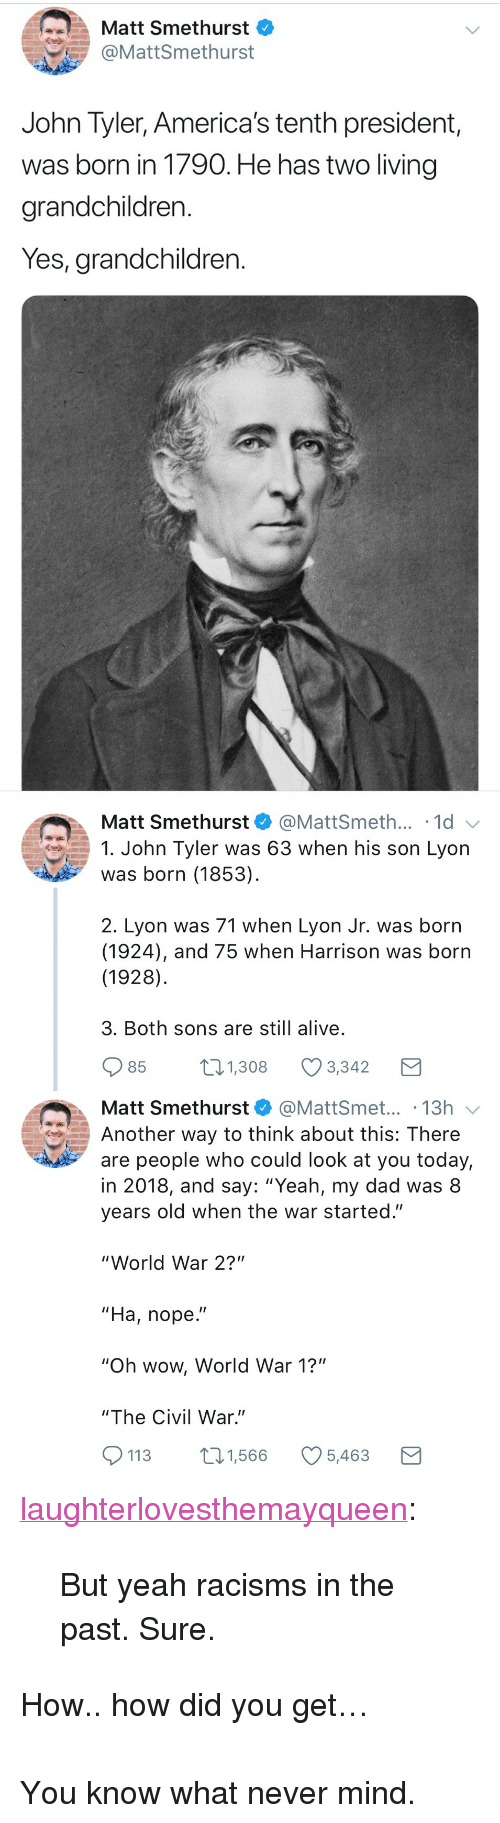 "Alive, Dad, and Tumblr: Matt Smethurst  @MattSmethurst  John Tyler, America's tenth president,  was born in 1790. He has two living  grandchildren.  Yes, grandchildren.   Matt Smethurst  @MattSmeth... 1d  1. John Tyler was 63 when his son Lyon  was born (1853)  2. Lyon was 71 when Lyon Jr. was born  (1924), and 75 when Harrison was born  (1928)  3. Both sons are still alive  85  1.308 Ø3342  Matt Smethurst@MattSmet... .13h  Another way to think about this: There  are people who could look at you today,  in 2018, and say: ""Yeah, my dad was 8  years old when the war started.""  ""World War 2?""  ""Ha, nope.""  ""Oh wow, World War 1?""  ""The Civil War.""  113 1,566 5,463 <p><a href=""http://laughterlovesthemayqueen.tumblr.com/post/173047841984/but-yeah-racisms-in-the-past-sure"" class=""tumblr_blog"">laughterlovesthemayqueen</a>:</p>  <blockquote><p>But yeah racisms in the past. Sure. </p></blockquote>  <p>How.. how did you get…</p><p><br/></p><p>You know what never mind.</p>"